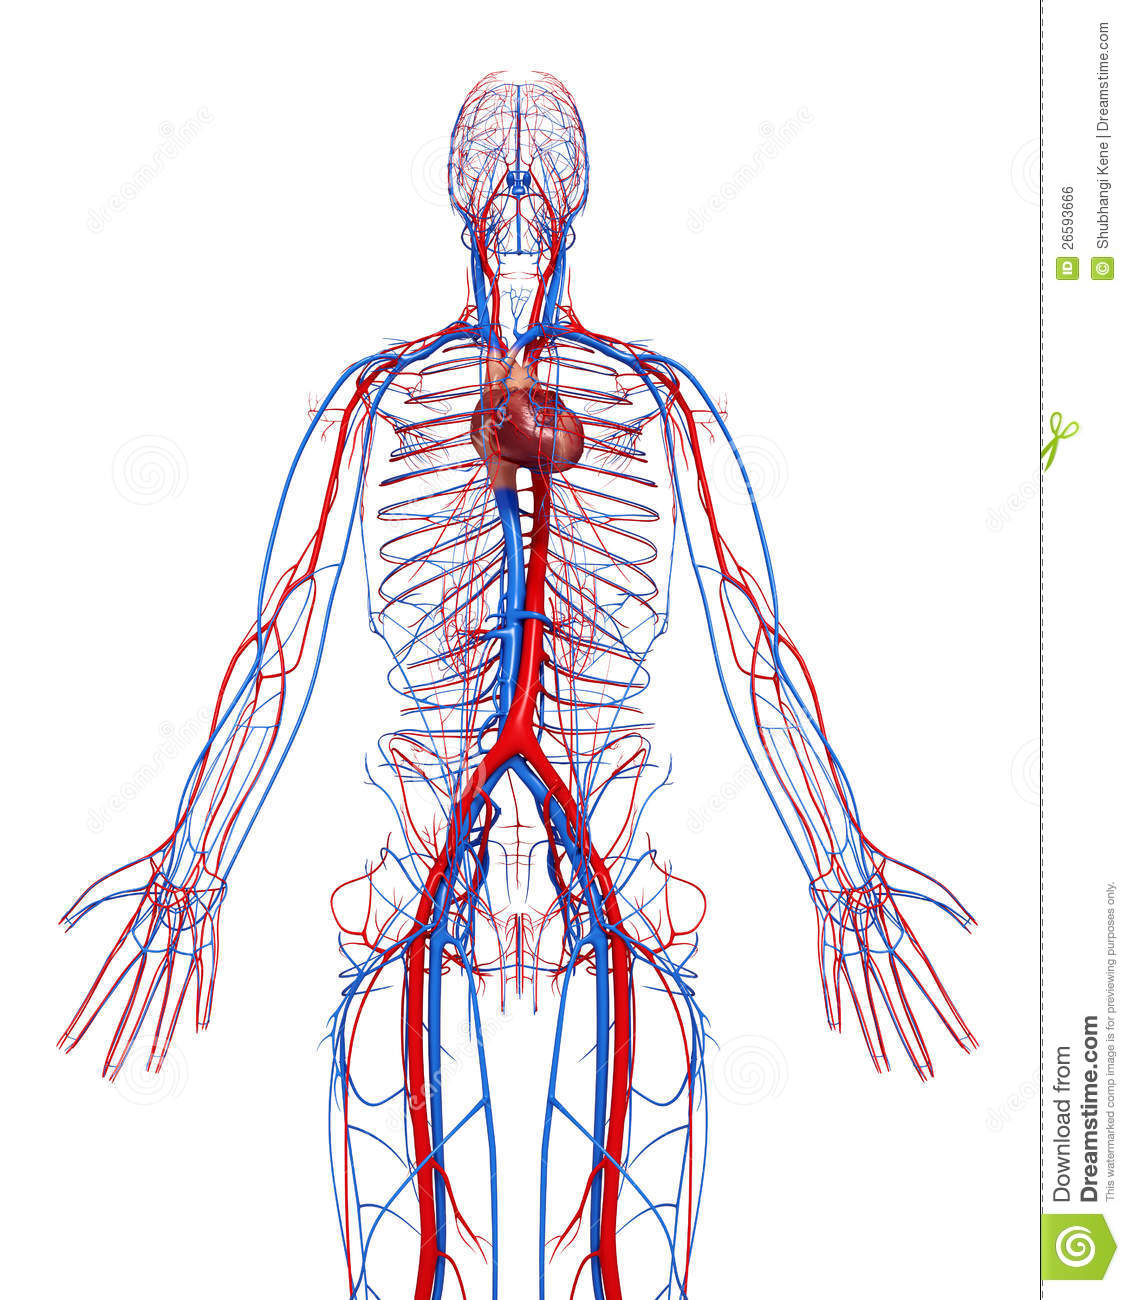 human vascular anatomy diagram tach wiring circulatory system of male with heart stock illustration